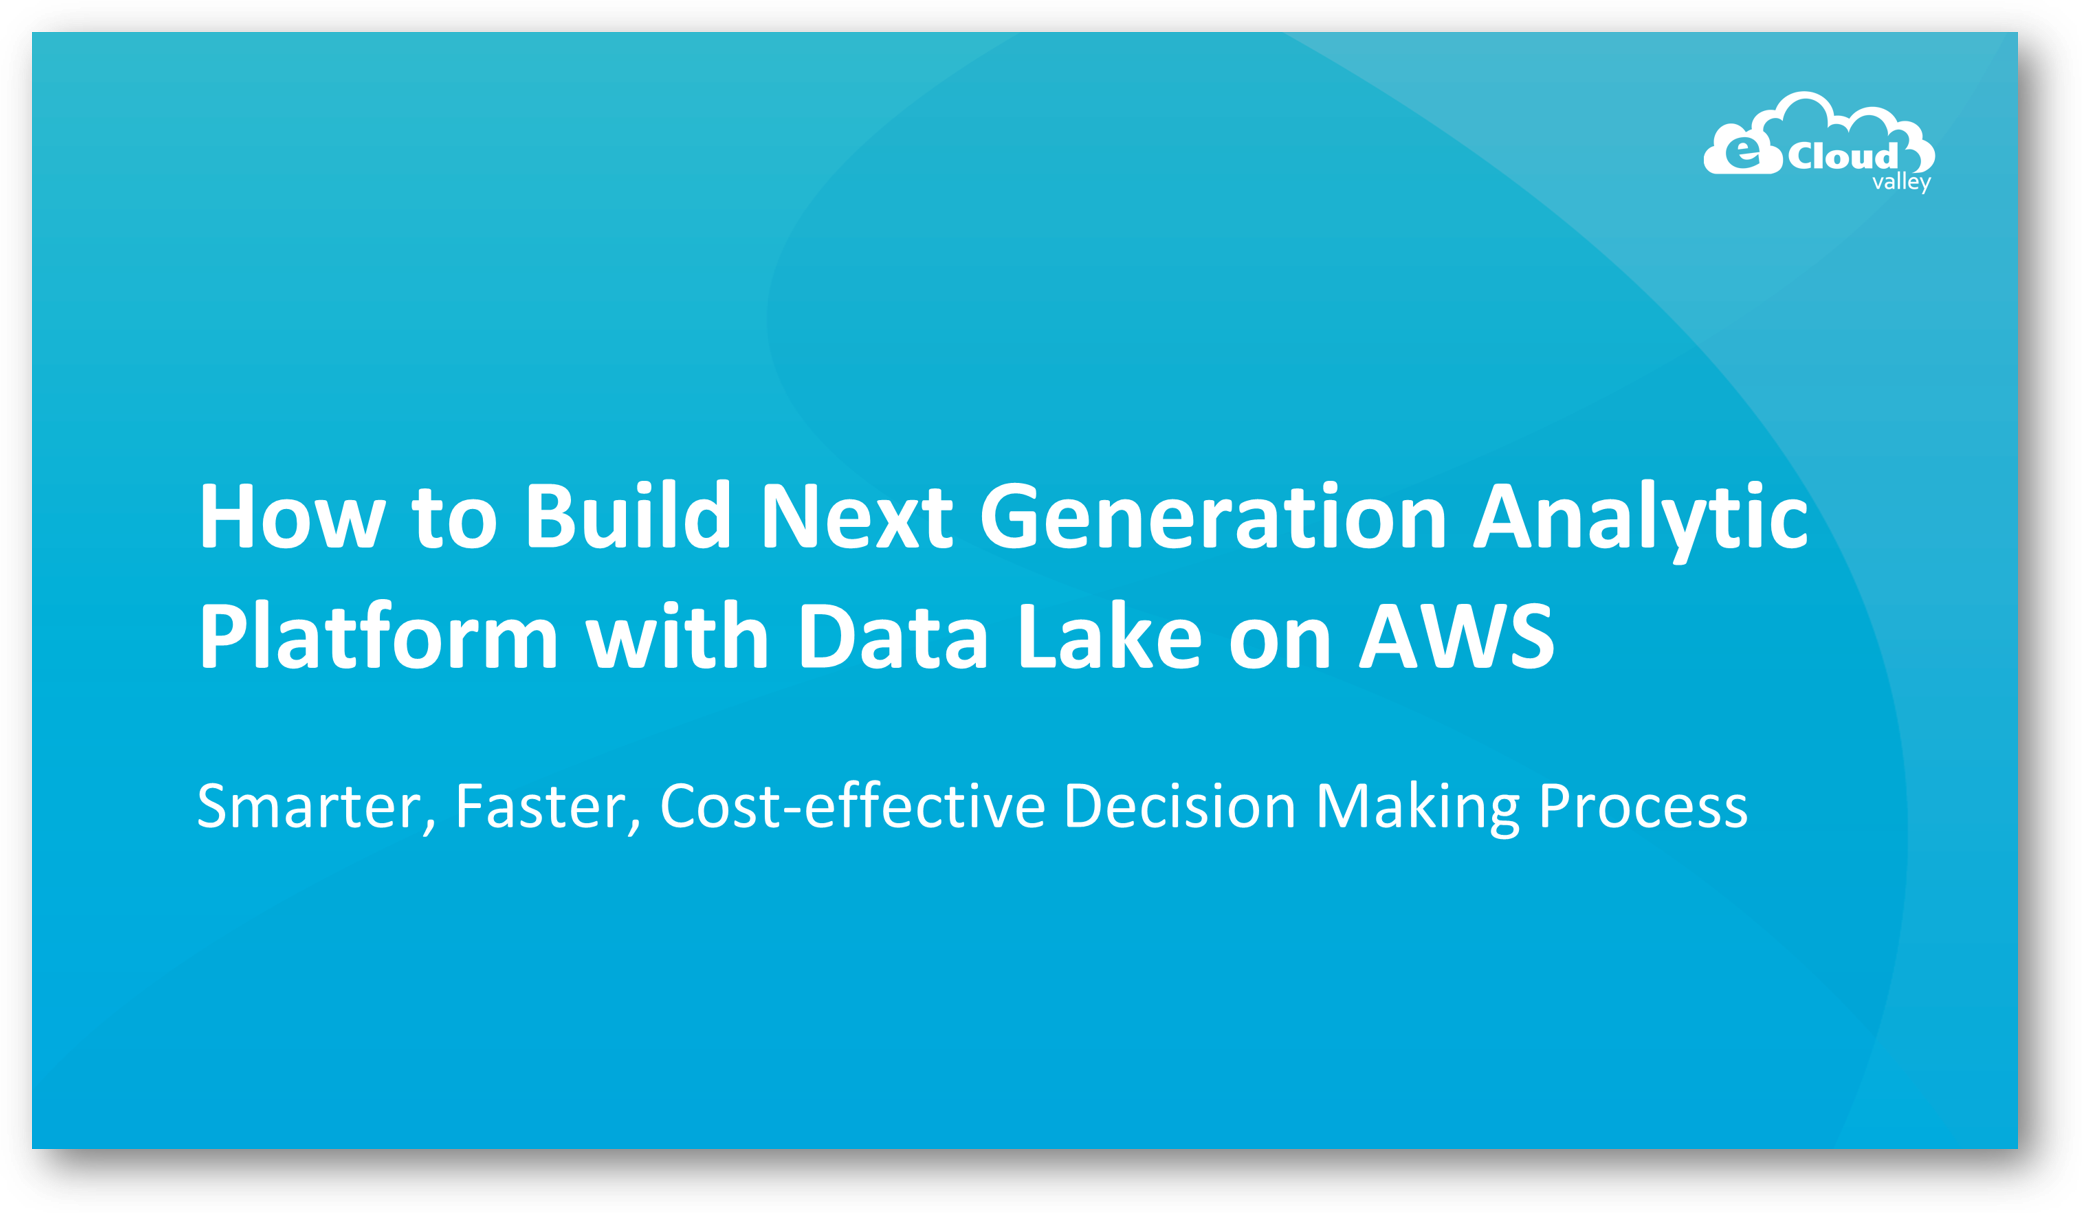 How to Build Next Generation Analytic Platform with Data Lake on AWS